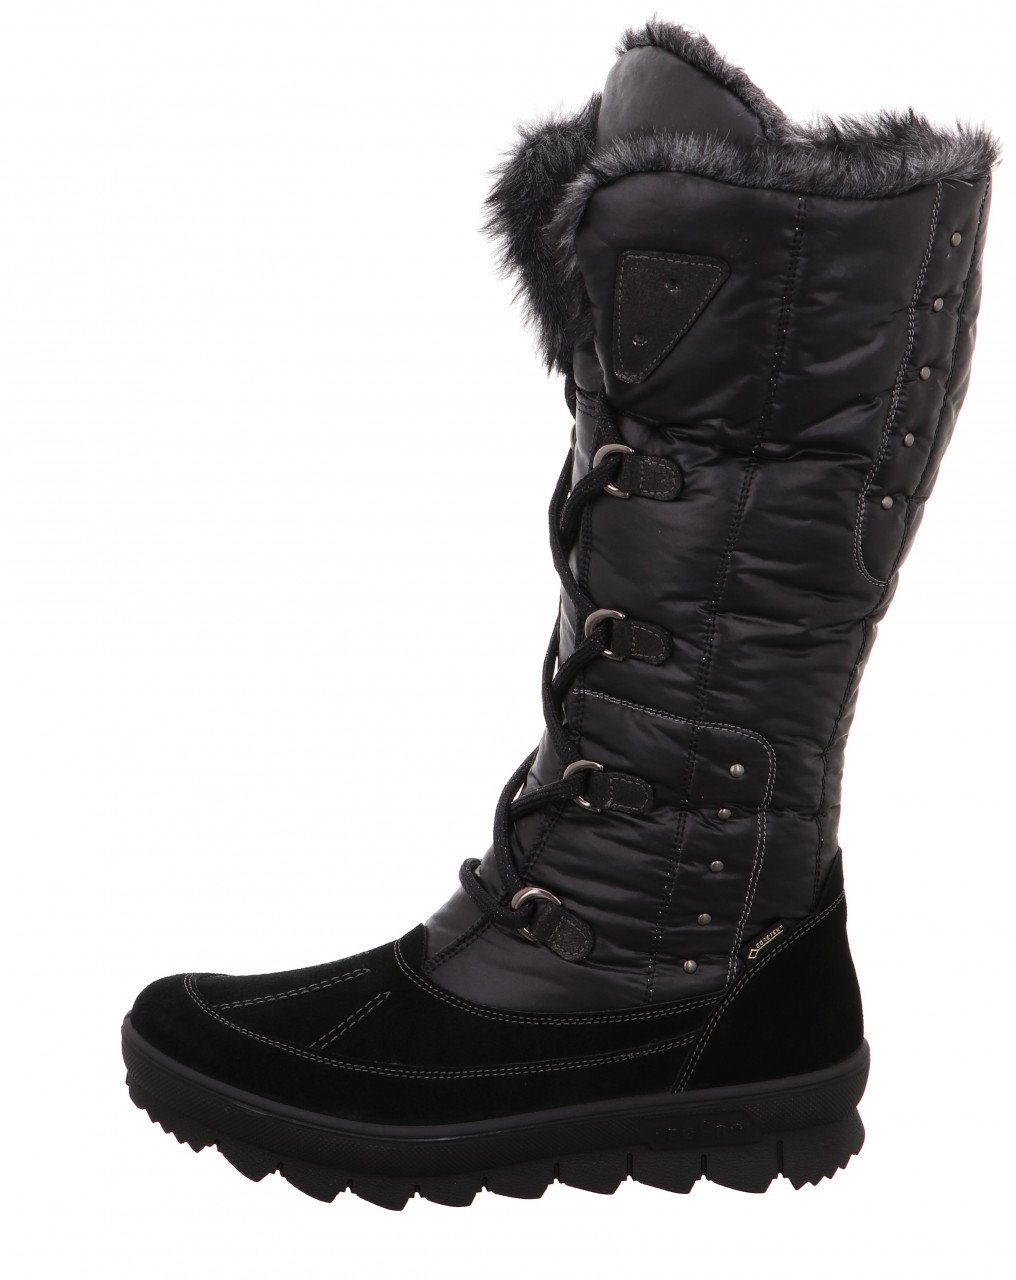 "NOVARA 931-00 BLACK WOMEN'S NOVARA is the classic among the boots of legero: its extra-high shaft and loving, rustic details such as the metal eyelets characterize this model. The non-slip, yet very light and flexible sole with a striking sawtooth profile offers optimal stability on winter surfaces. The cozy warm lining in fur look with the proven GORE-TEX function is completely waterproof and with its breathability ensures optimum climate comfort in the shoe. Thanks to the side zip, it is possible to put on and take off quickly. With the help of the lacing, the shaft can be adjusted individually to the leg. The model, which is equipped with a removable insole, is offered in the comfort range ""G"". SKU 17268 REG 295. ALWAYS 269.00"